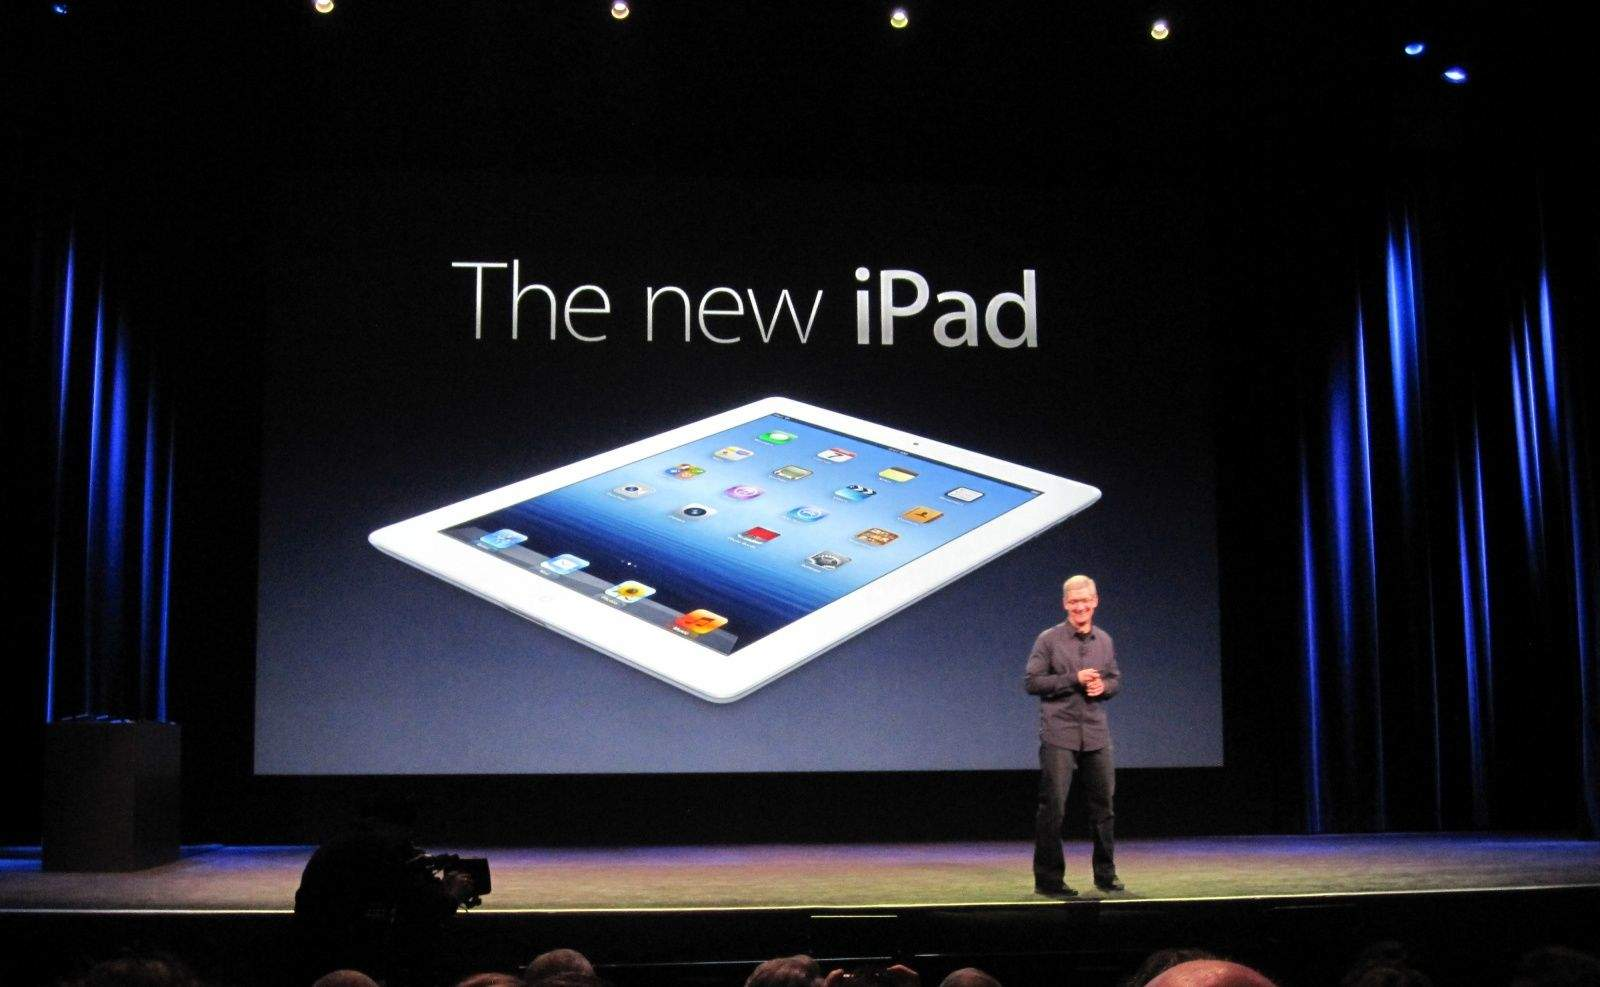 Tim-Cook-new-iPad